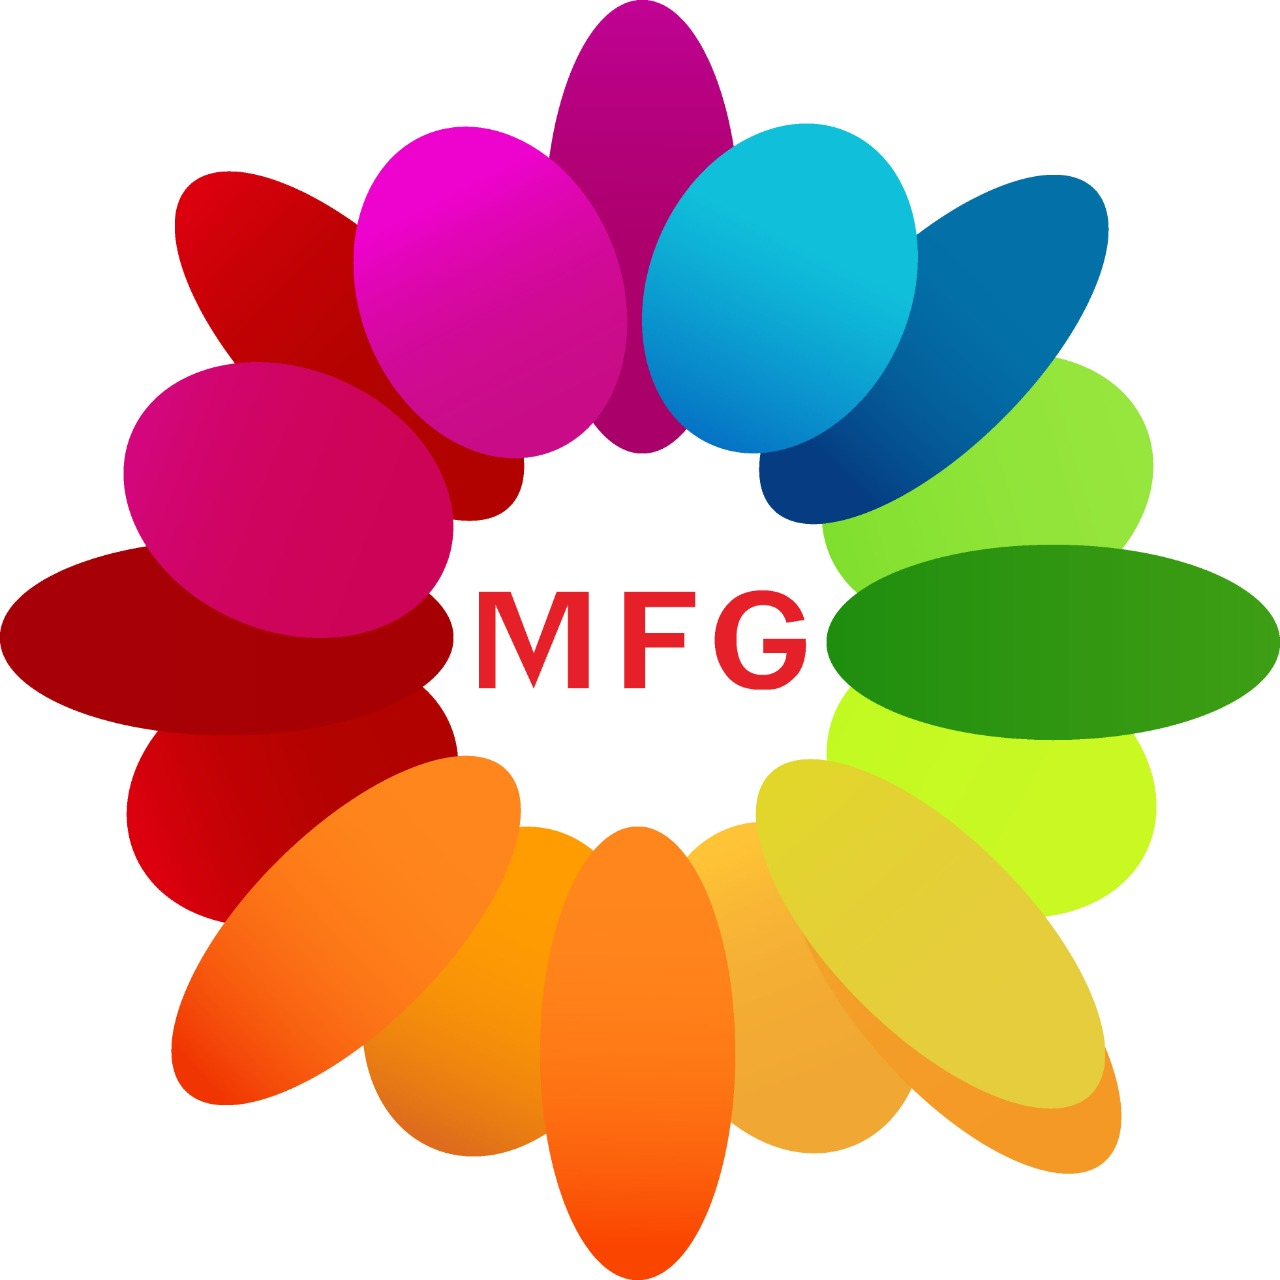 Bunch of 10 red roses with 1 pound butterscotch fresh cream cake